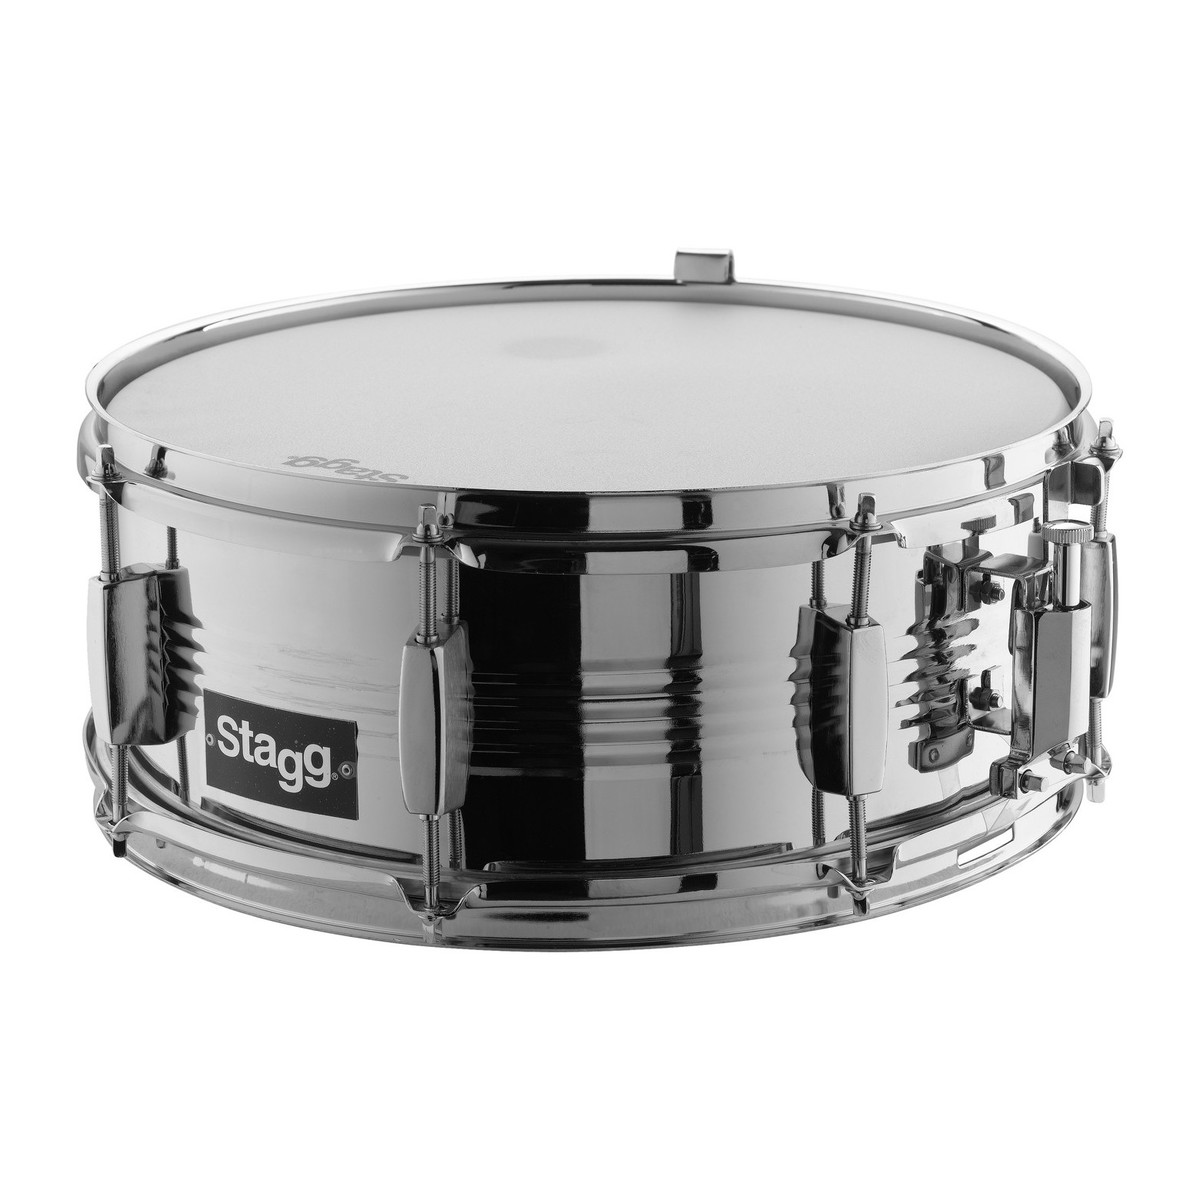 Stagg Steel Snare Drum